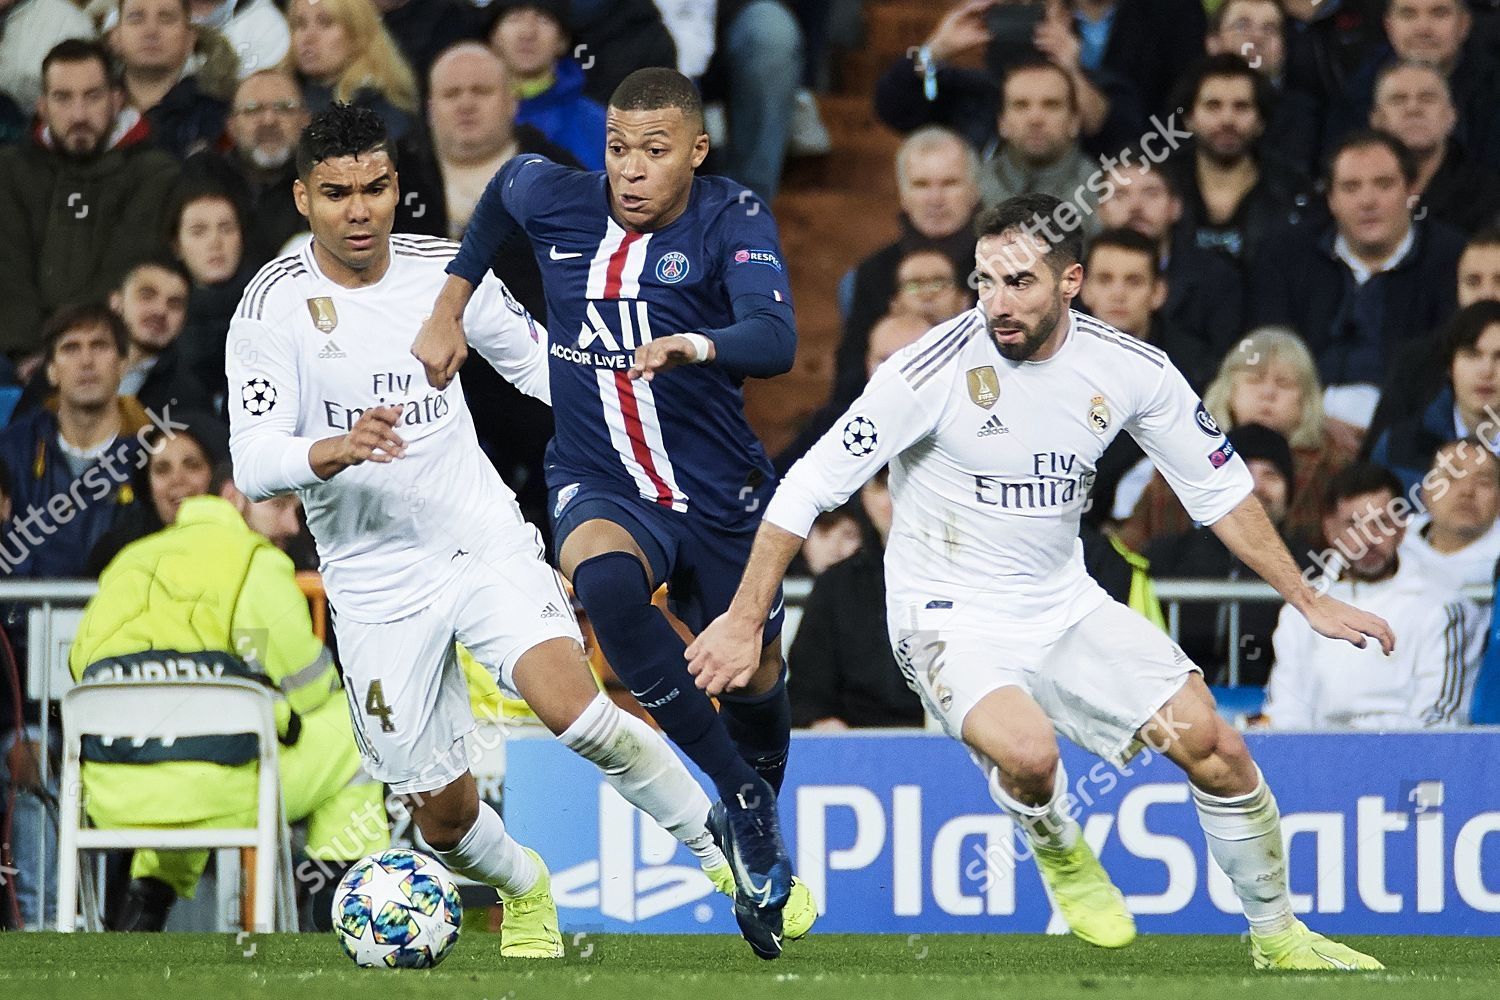 Kylian Mbappe Psg Action Against Casemiro Daniel Editorial Stock